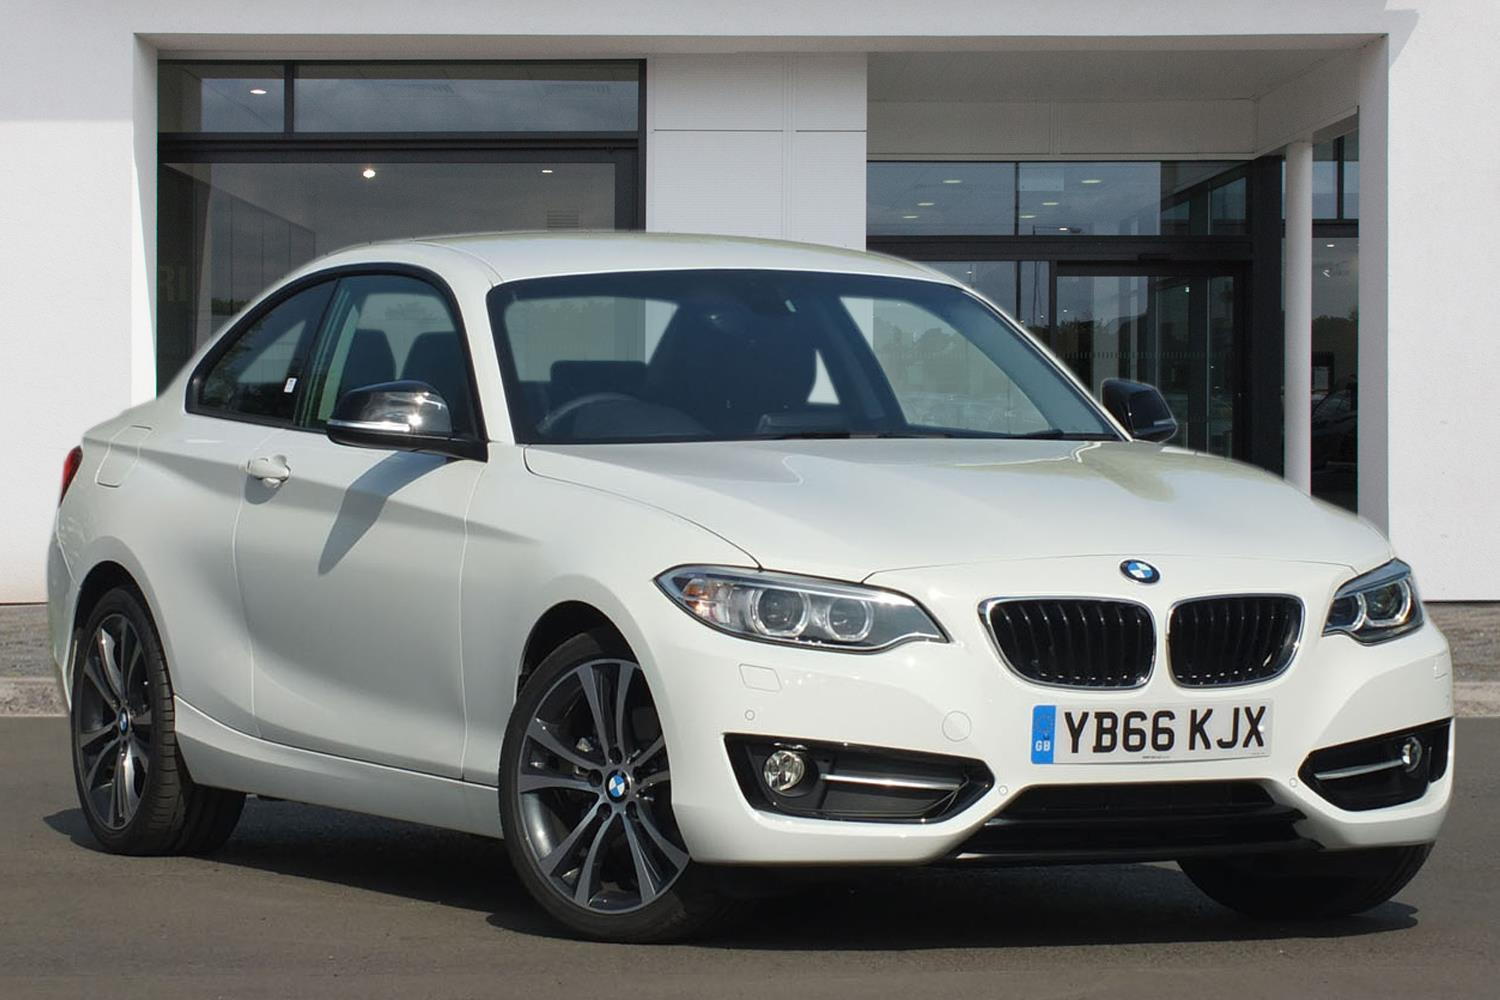 BMW 2 Series Coupé YB66KJX - Image 2